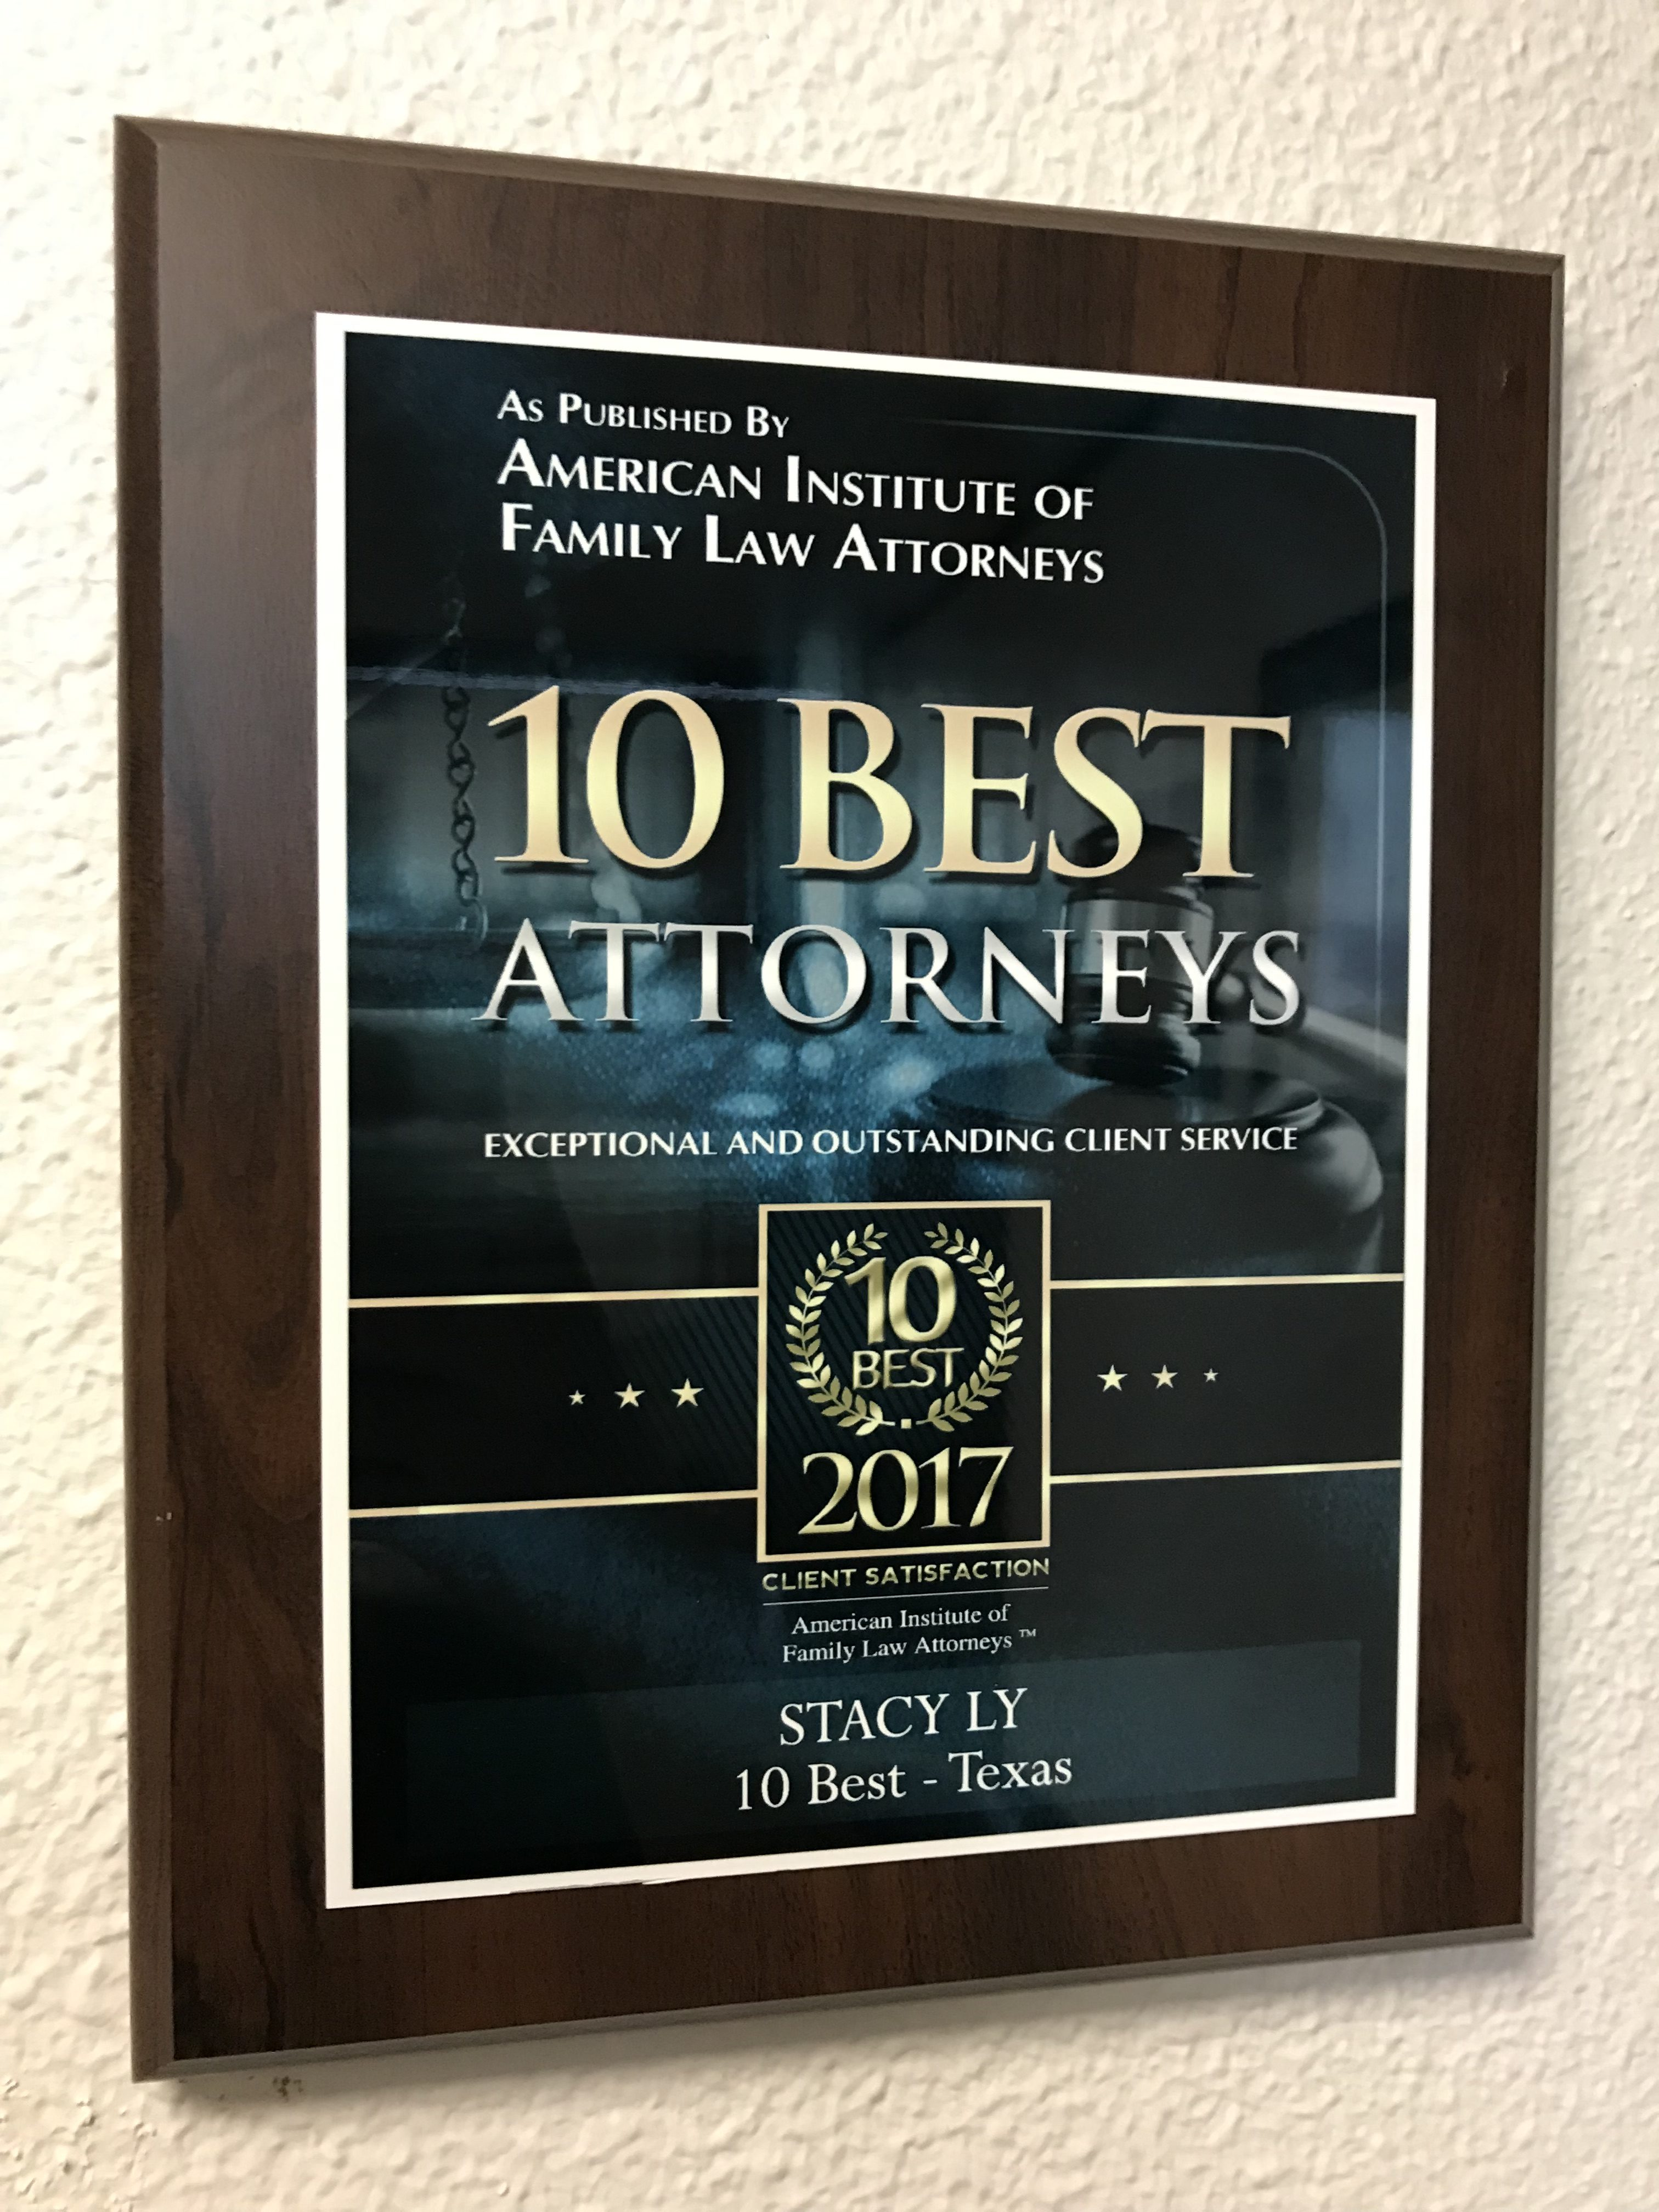 Houston Lawyer - Stacy Ly Top 10 best Texas Family lawyers